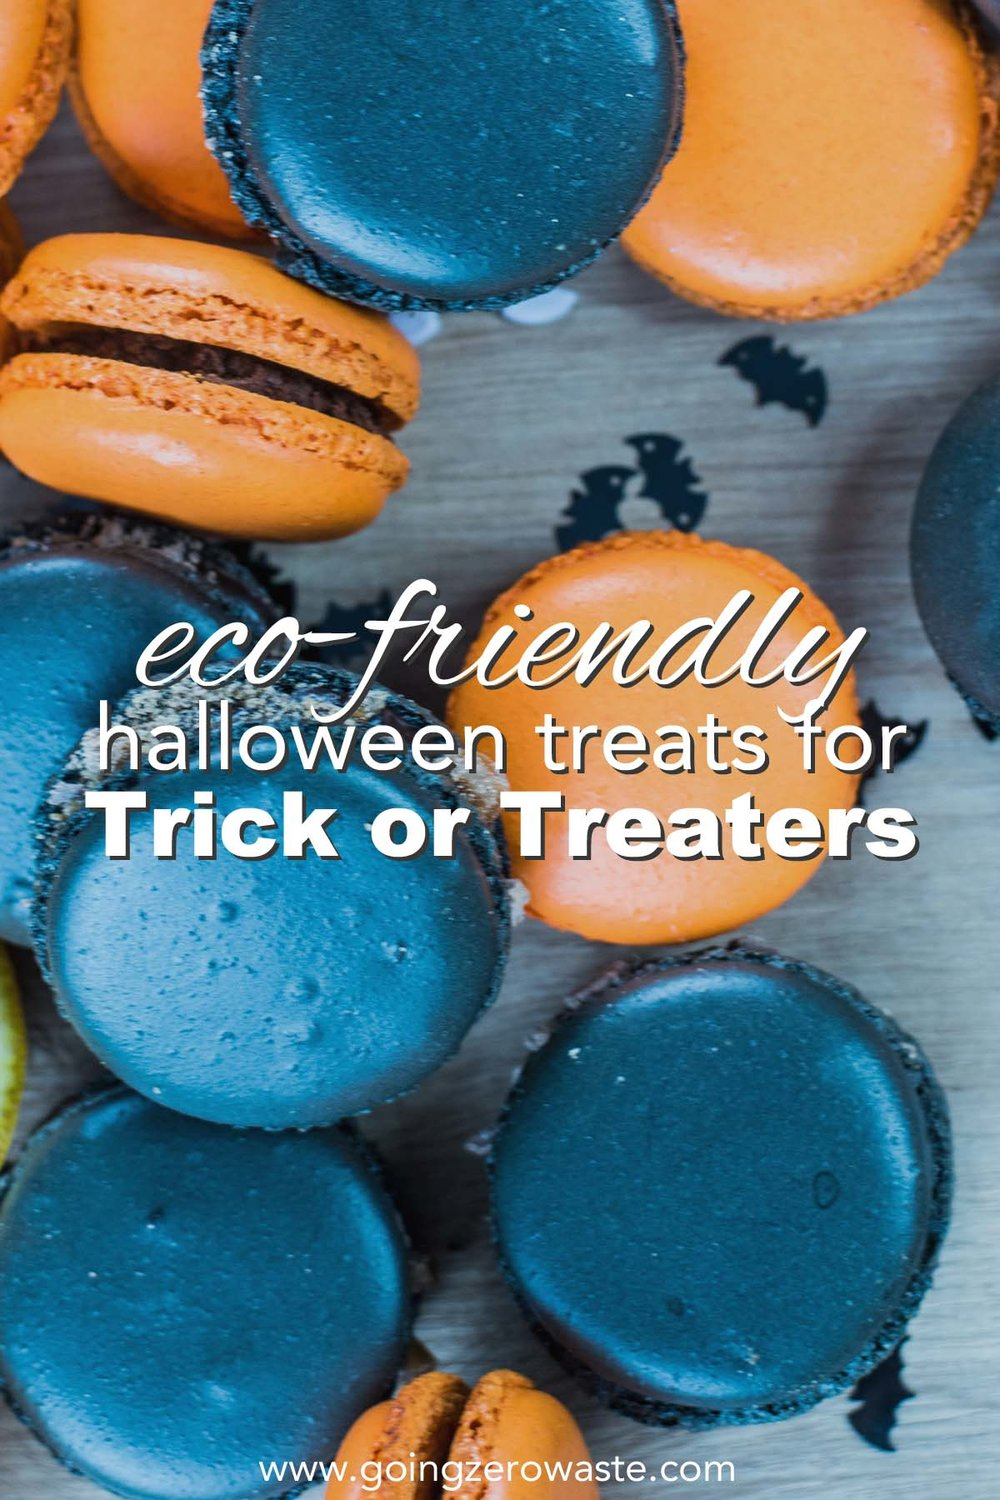 Eco-Friendly Halloween Treats for Trick or Treaters #Halloween #Ecofriendly #GoGreen #TrickorTreat #HealthyHalloween